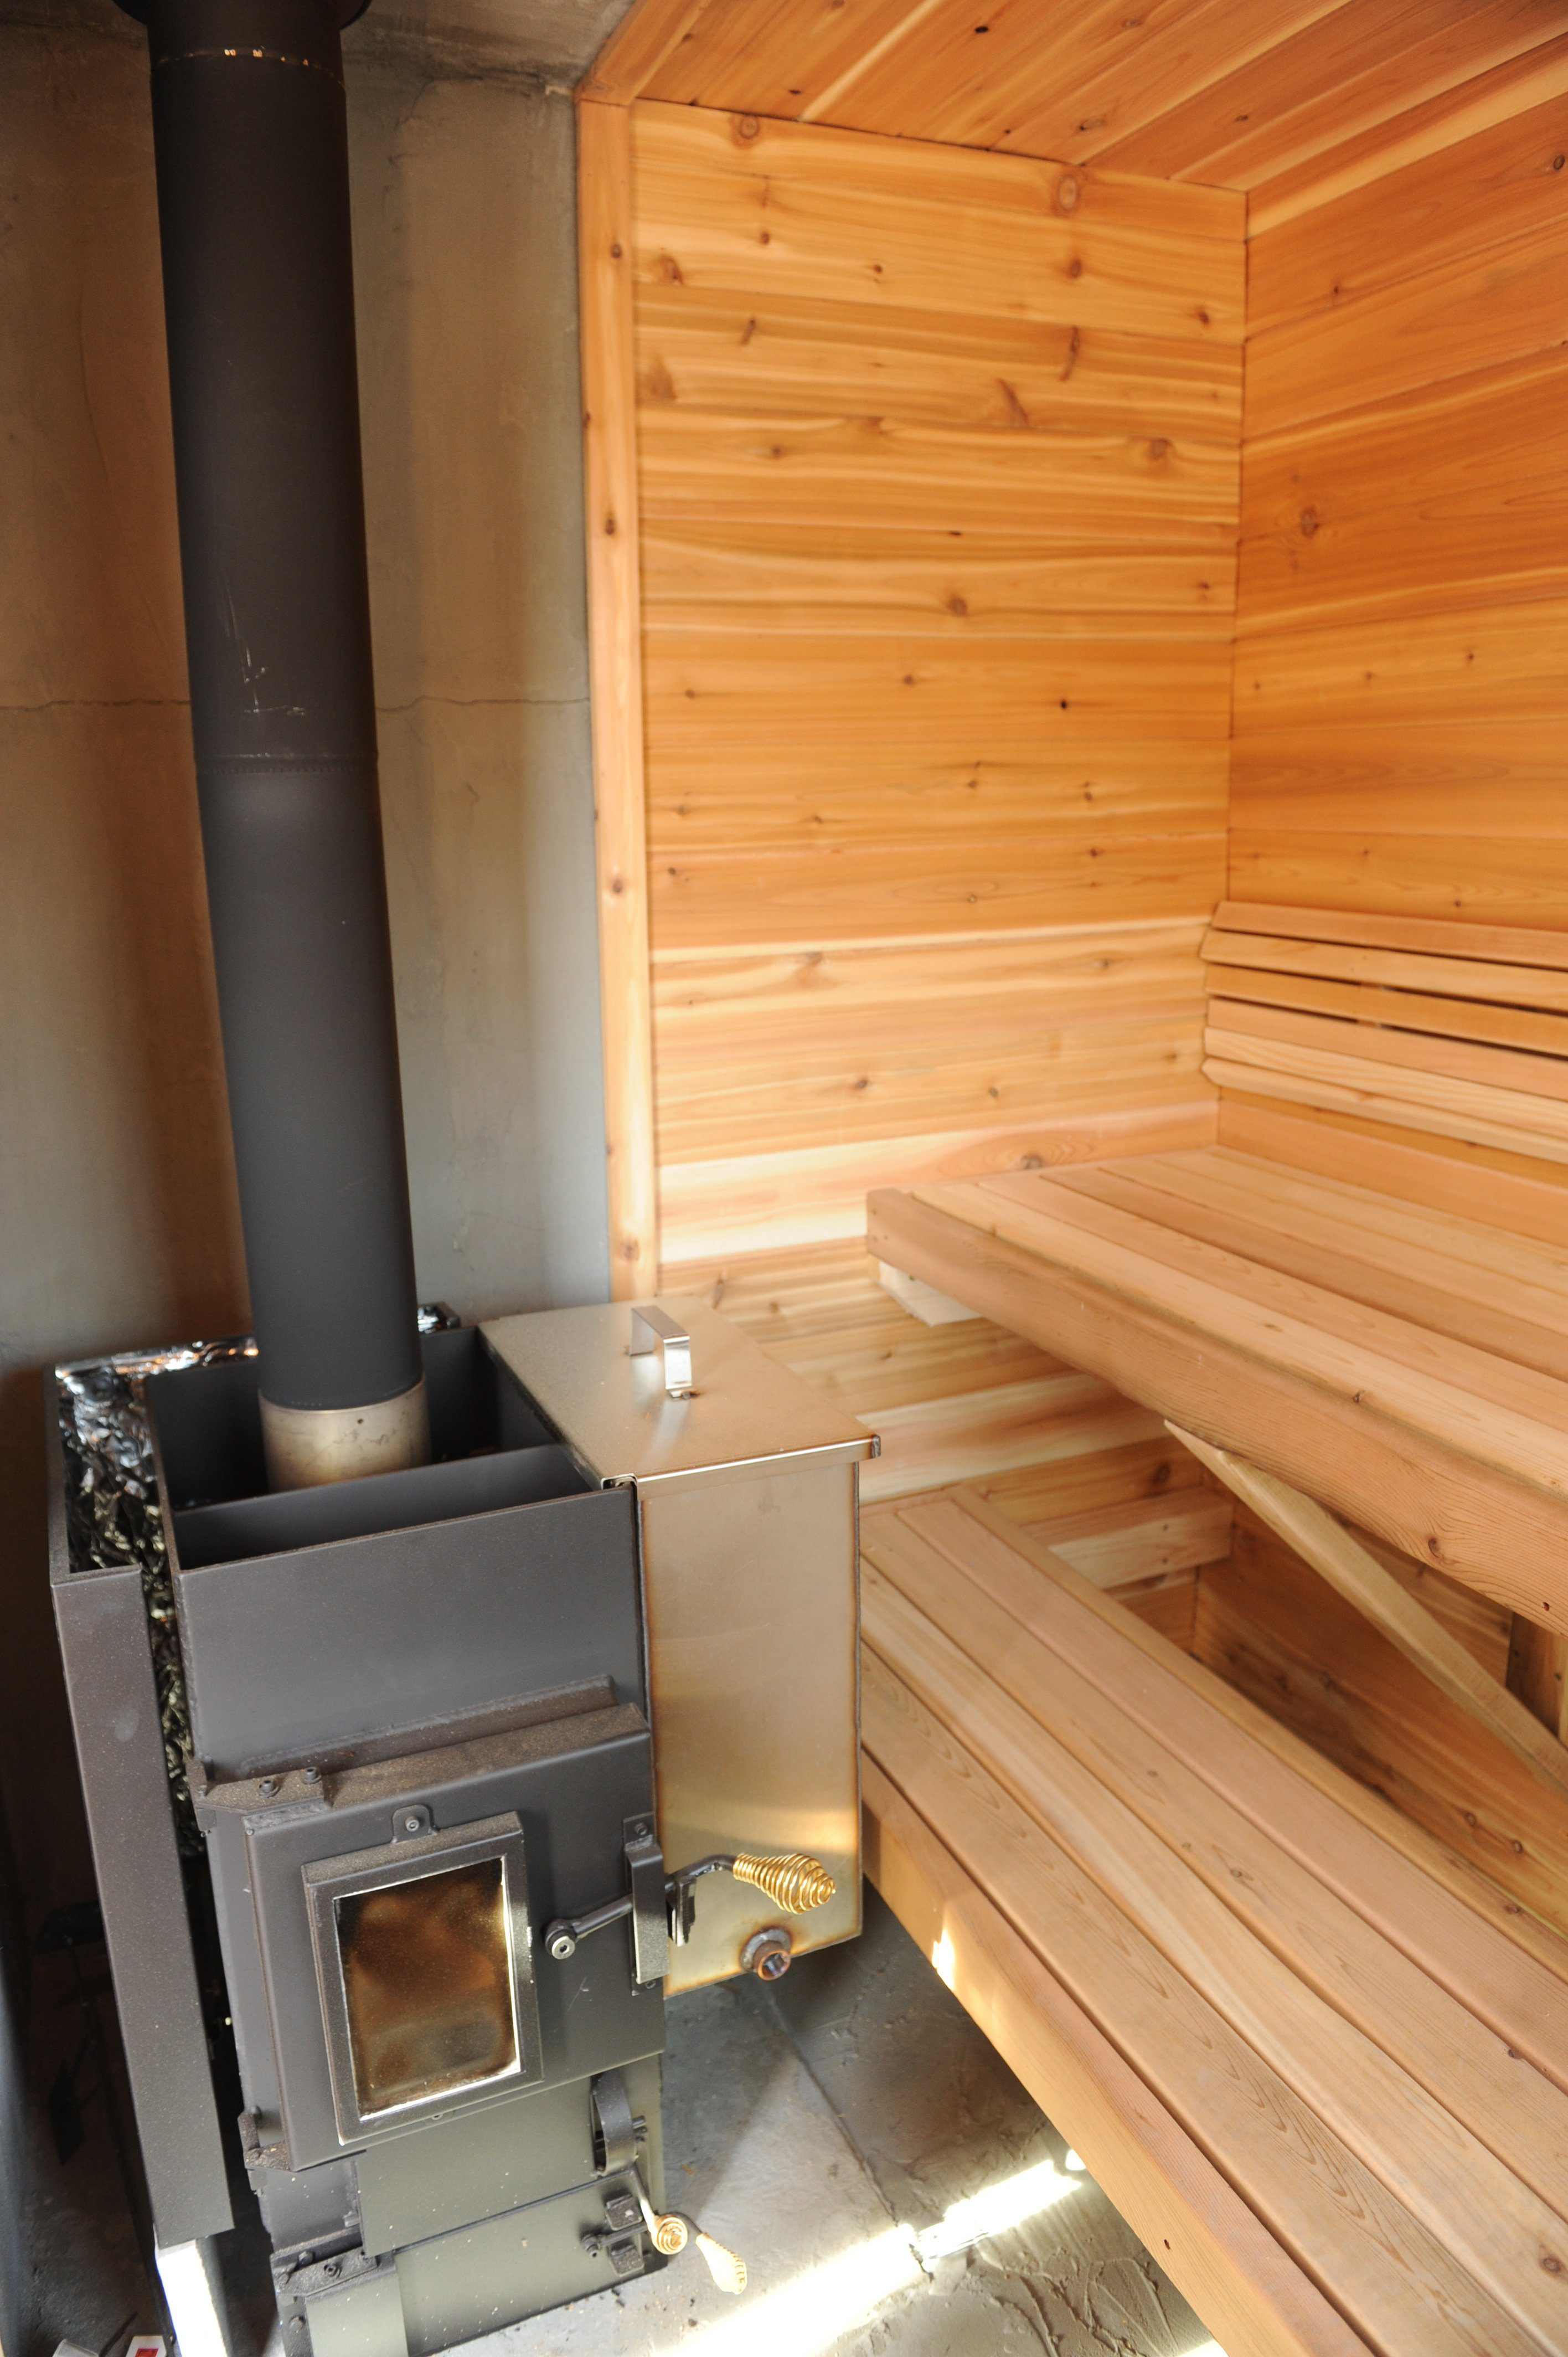 More chatter about wood burning sauna stoves, gasification ...